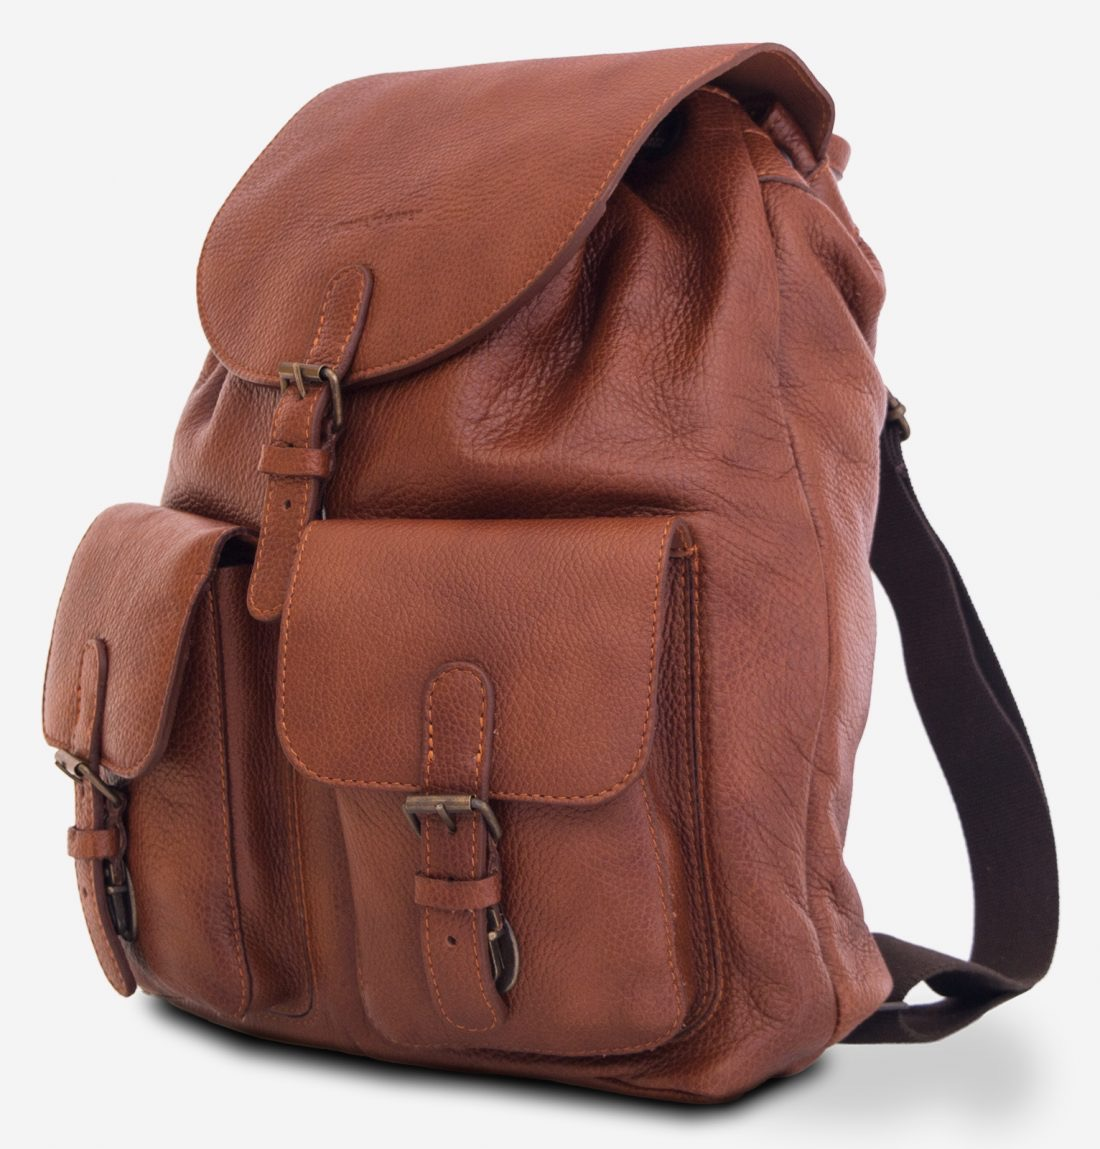 Side of the elegant brown soft leather backpack.